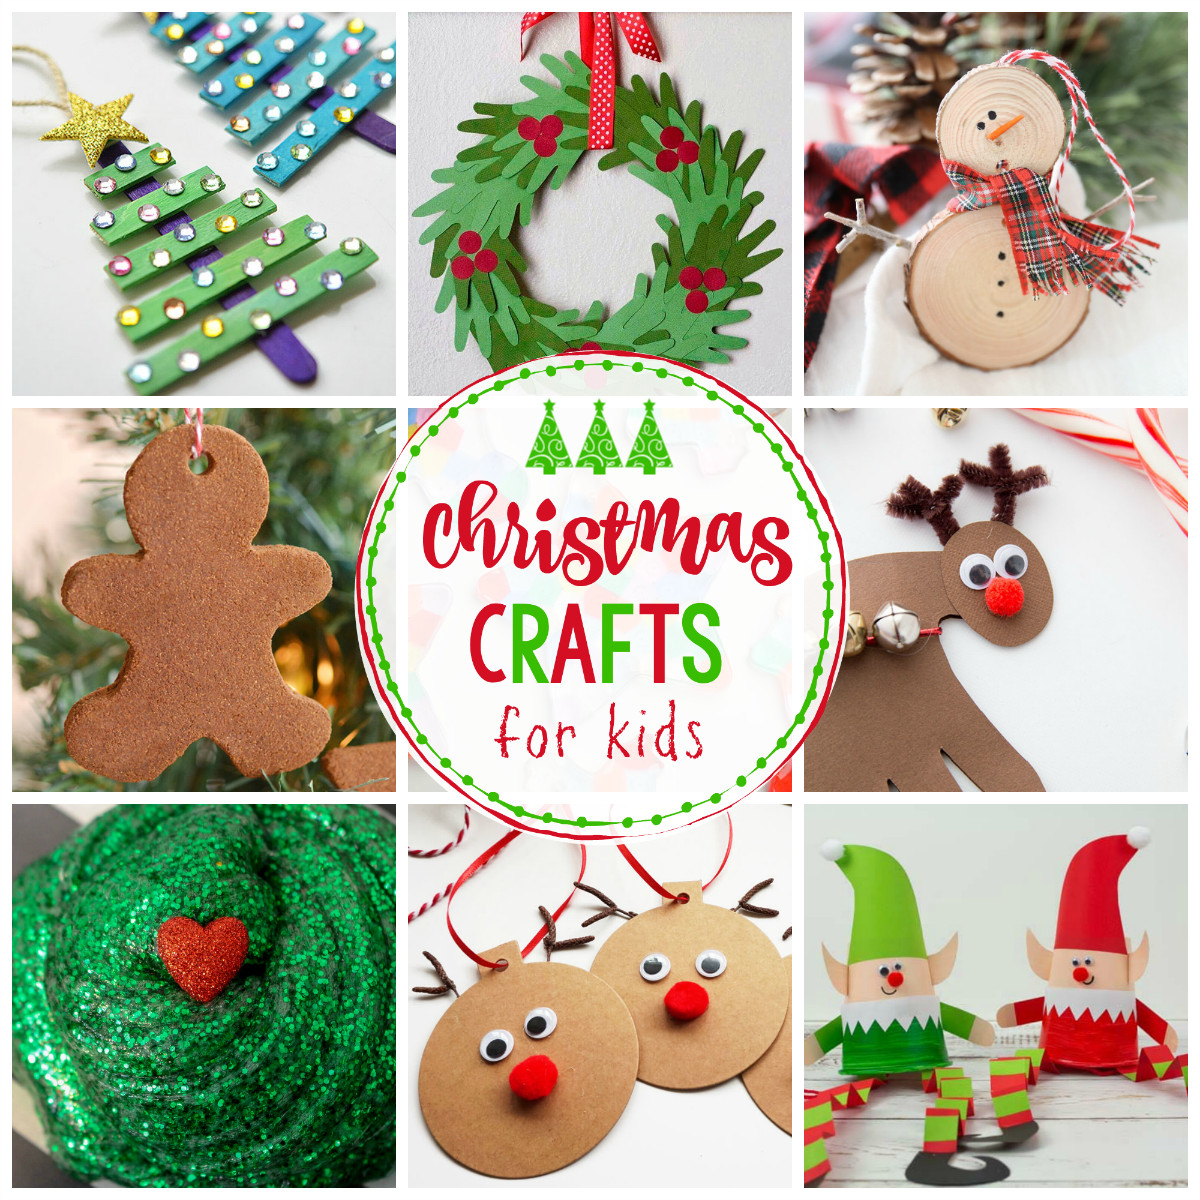 Holiday Projects For Kids  25 Easy Christmas Crafts for Kids Crazy Little Projects